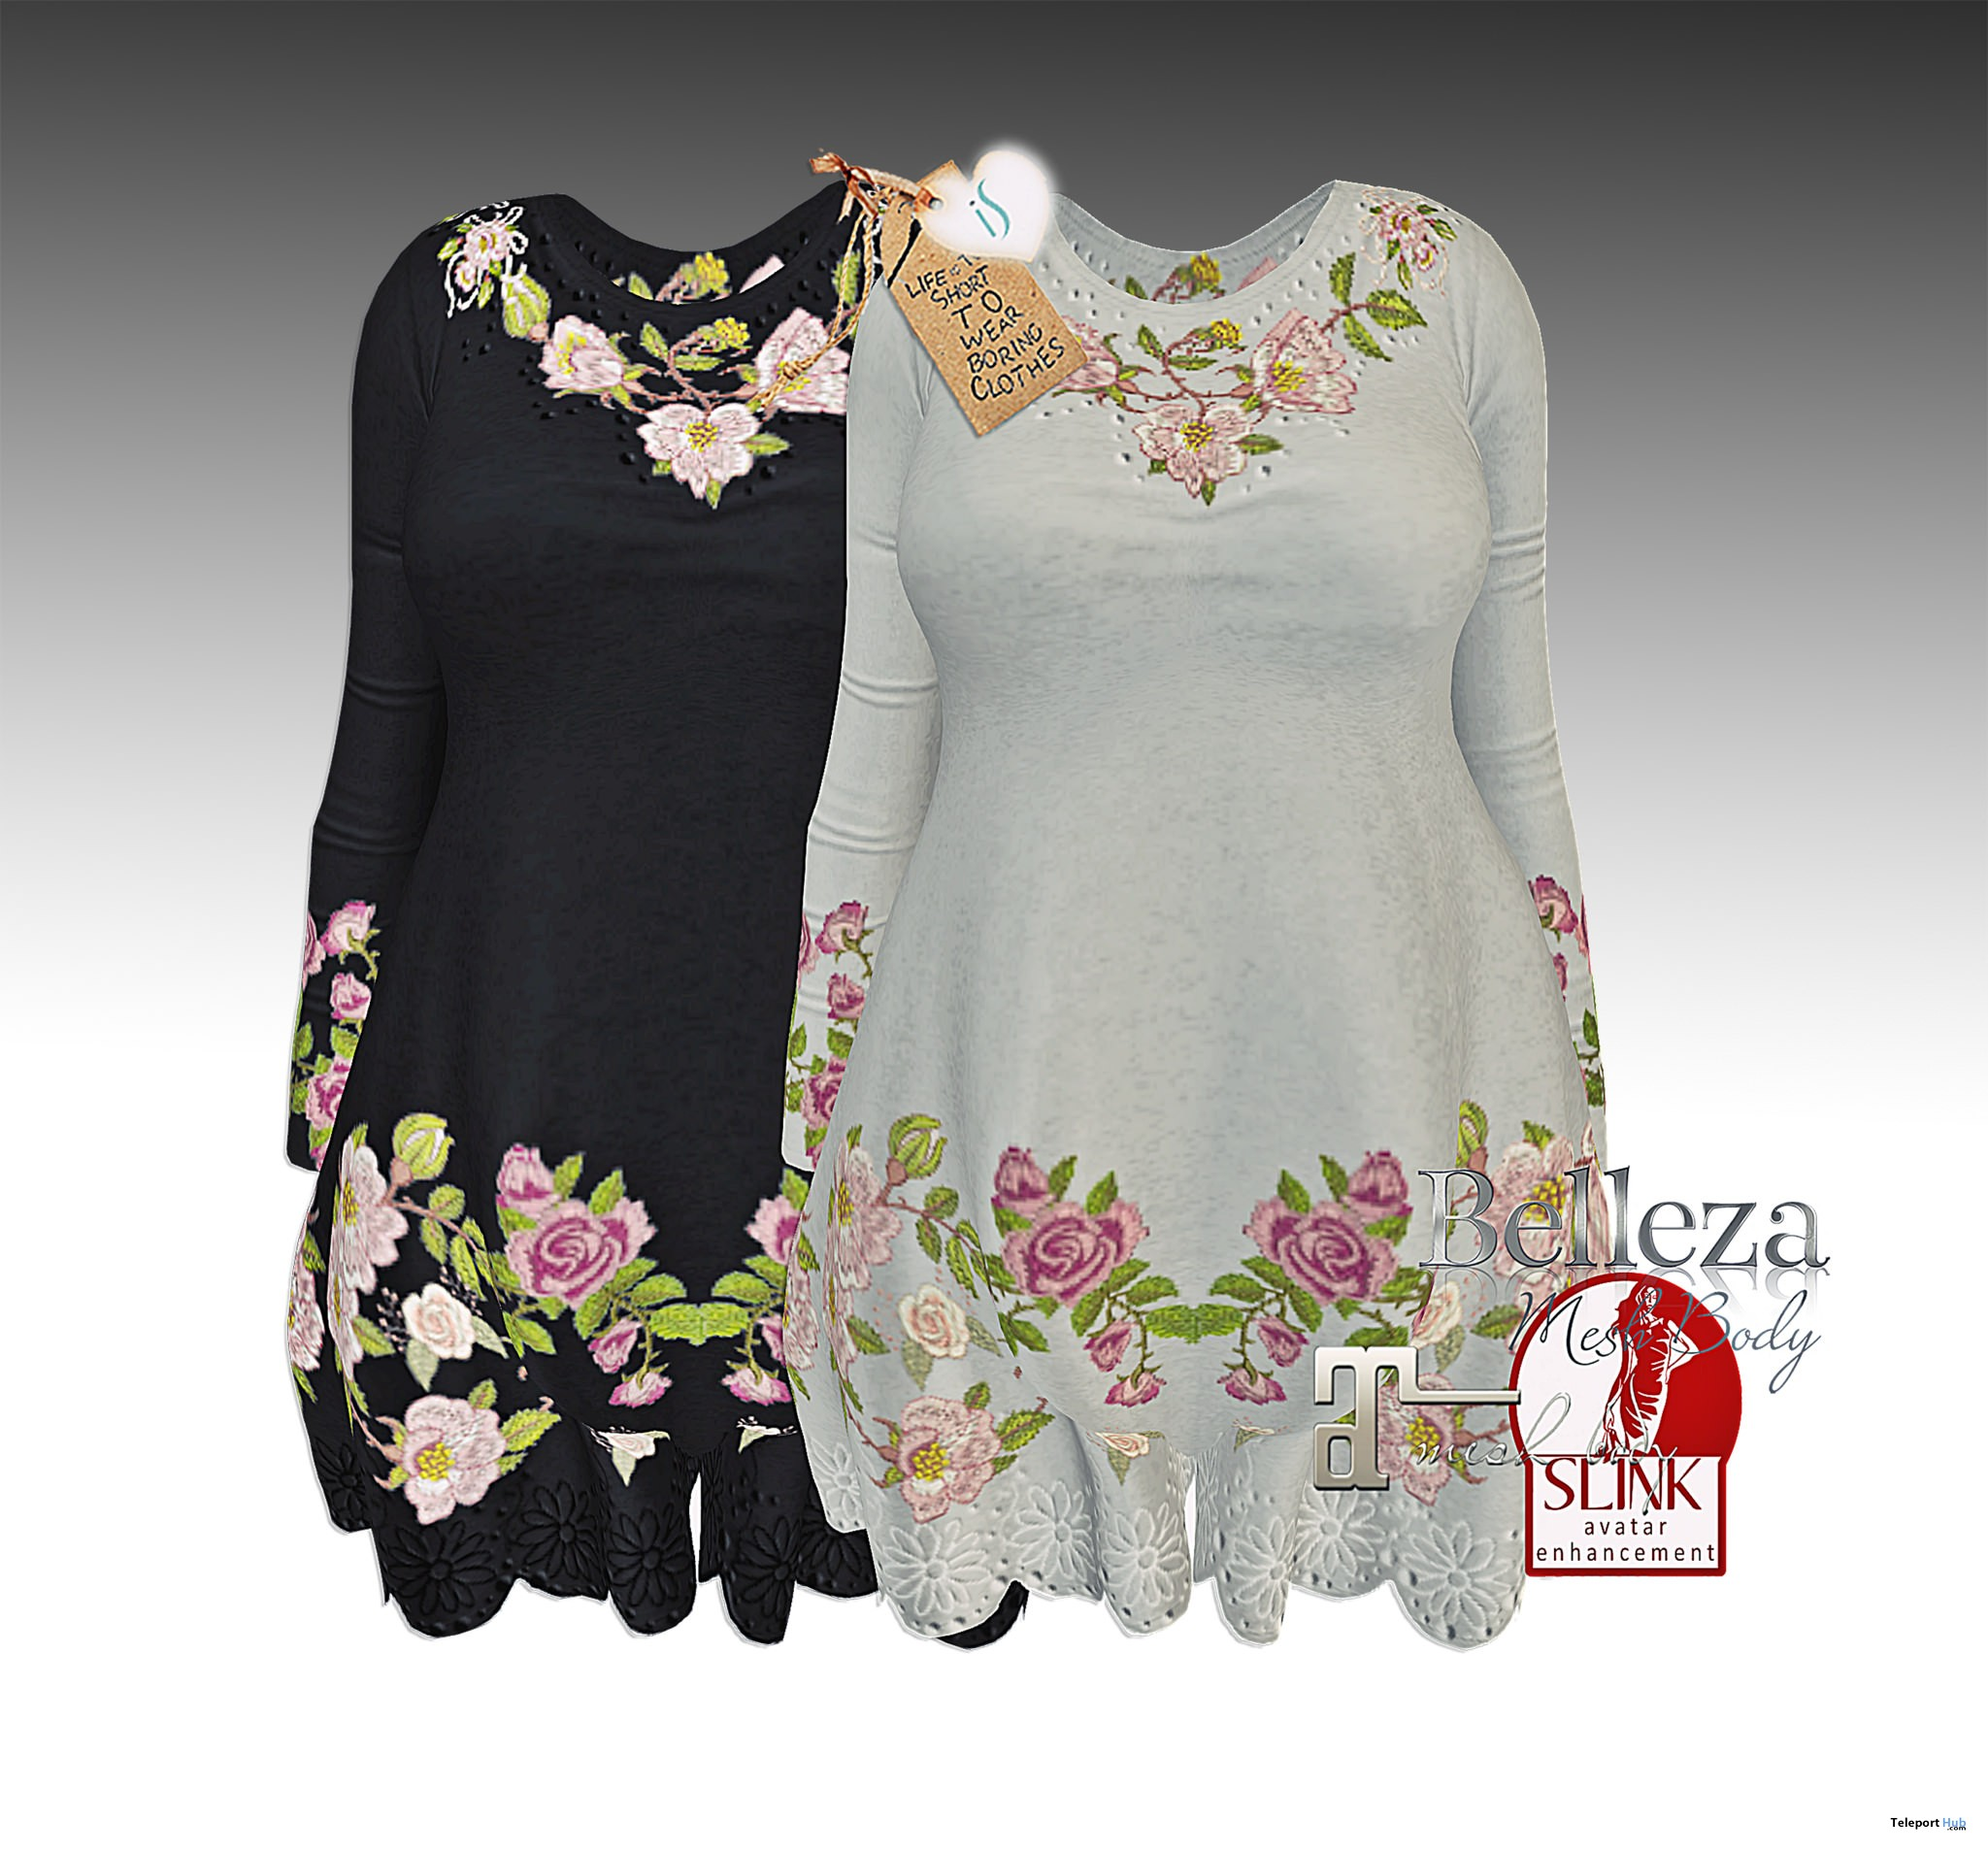 Flowers Embroidered Dress Group Gift by Insomnia Store - Teleport Hub - teleporthub.com